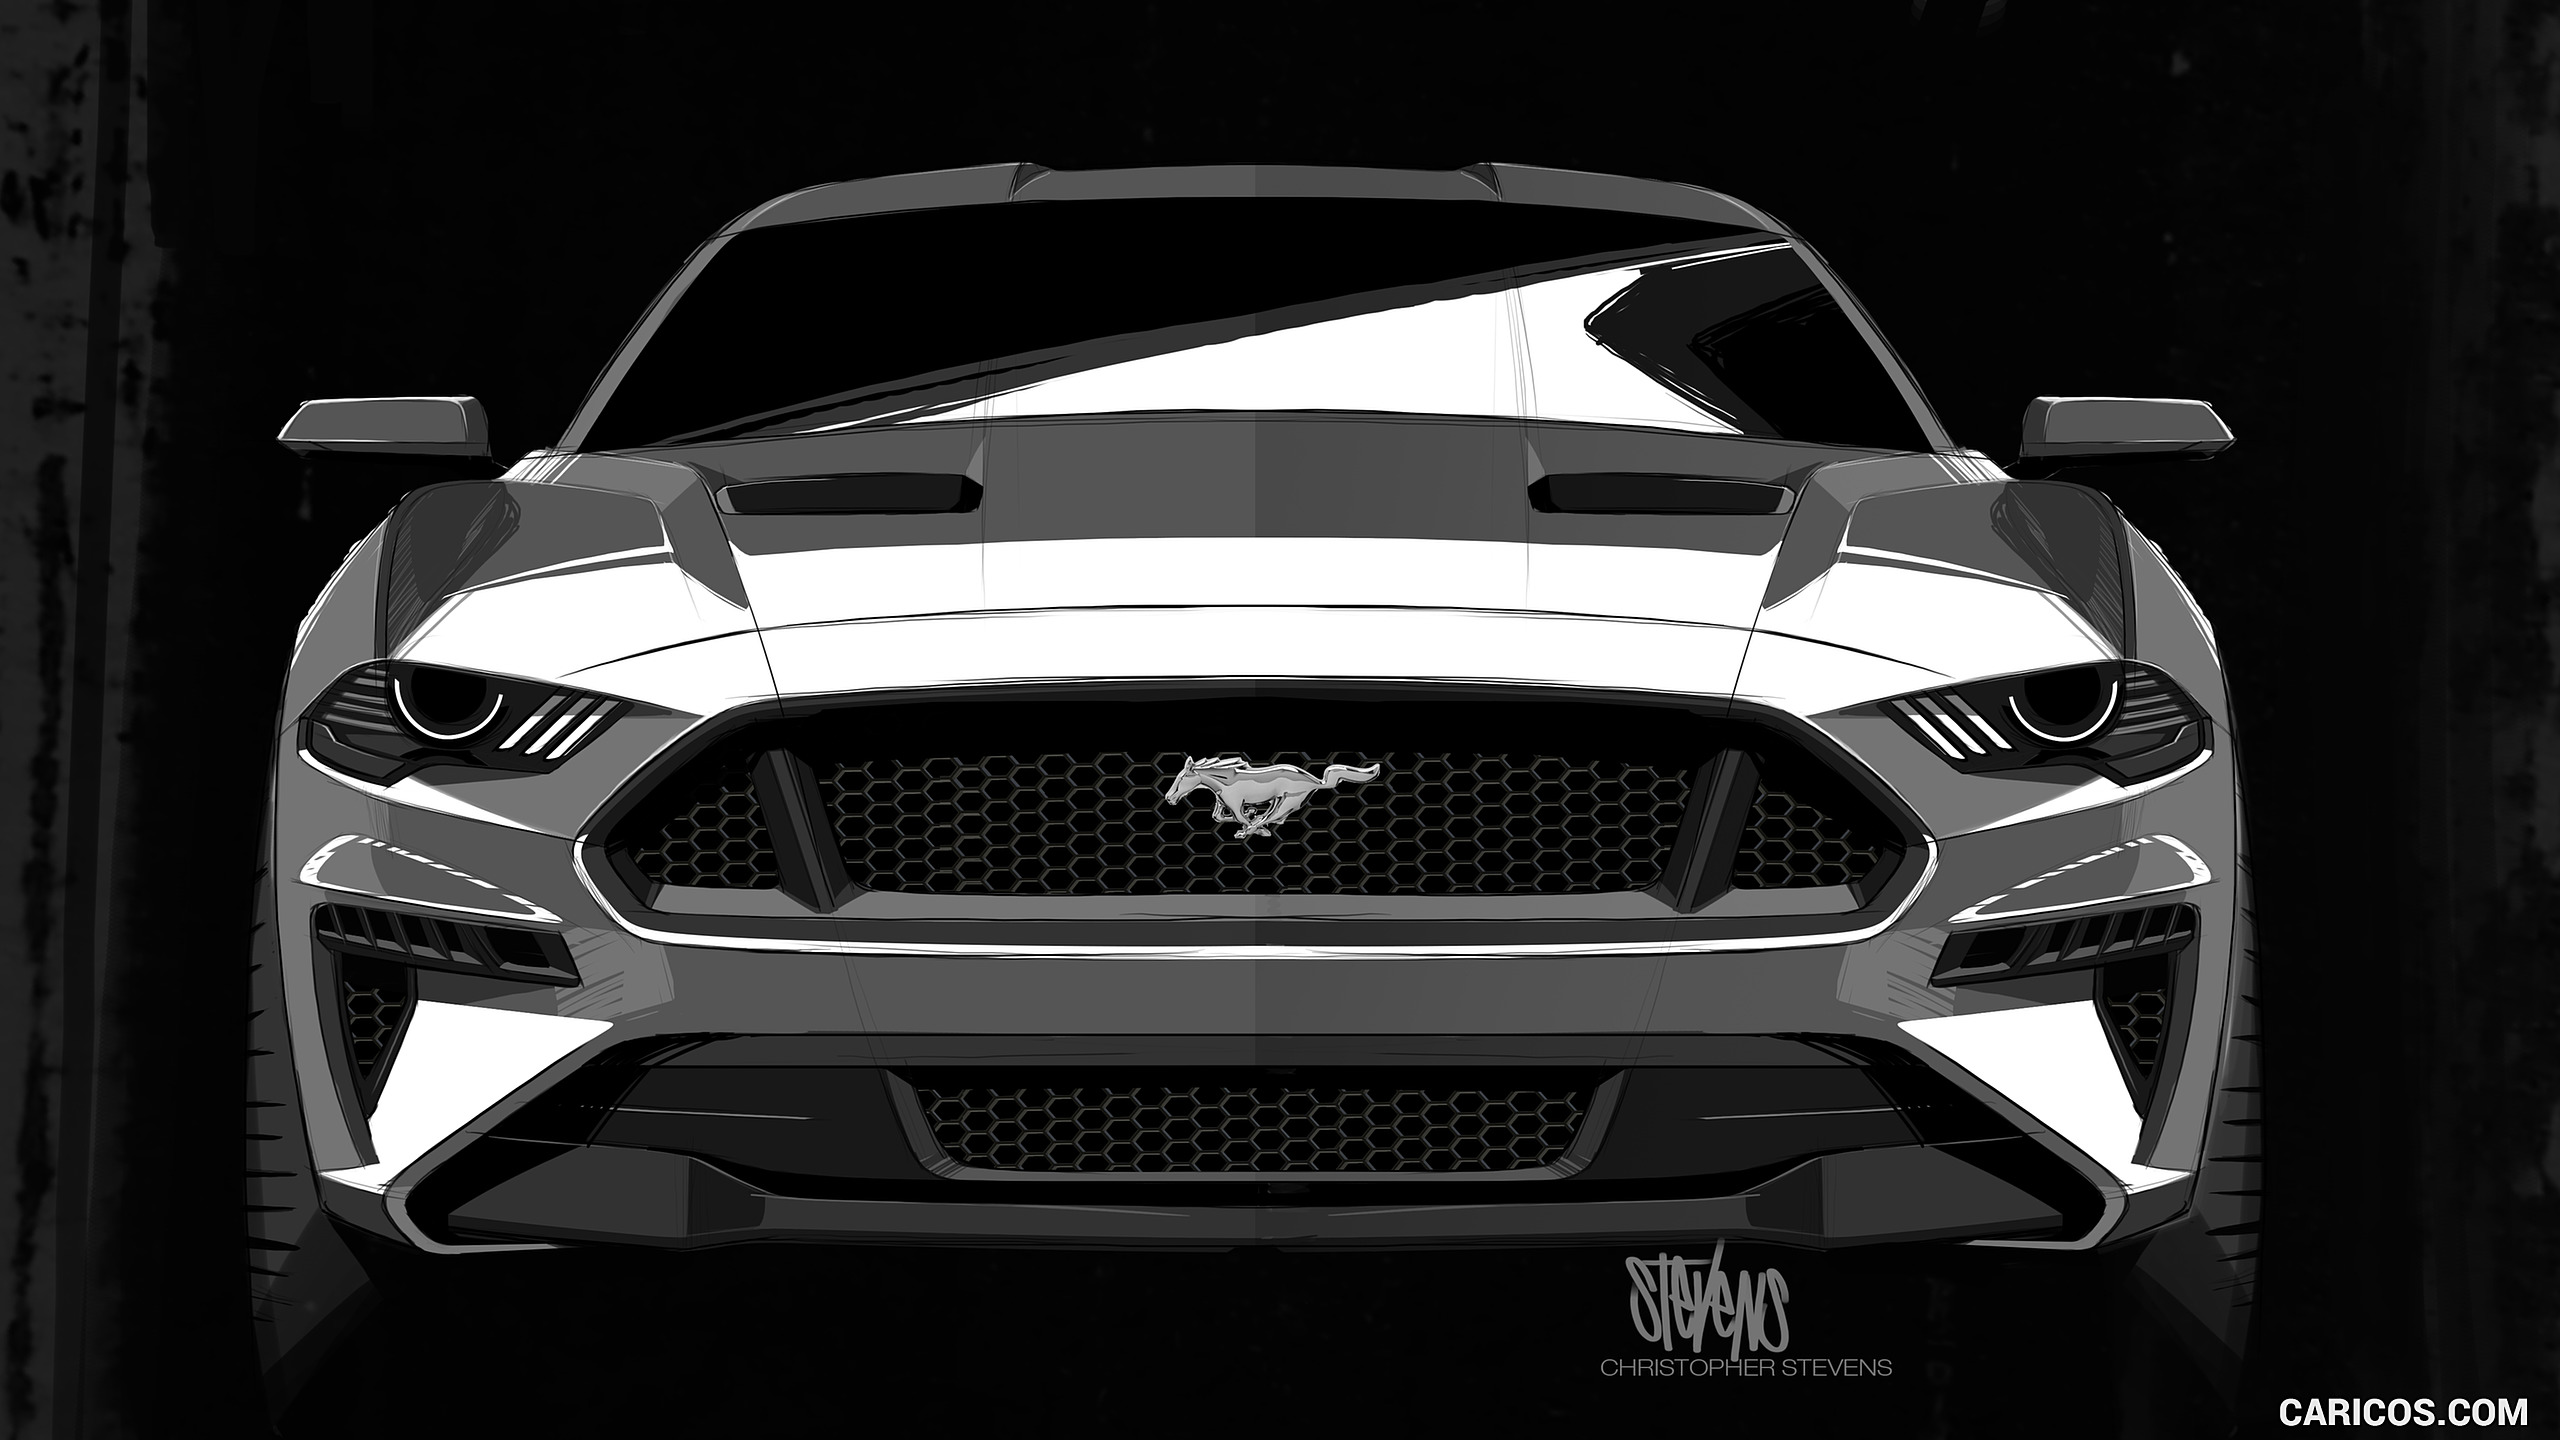 Ford Black Ford Mustang 2018 285215 Hd Wallpaper Backgrounds Download